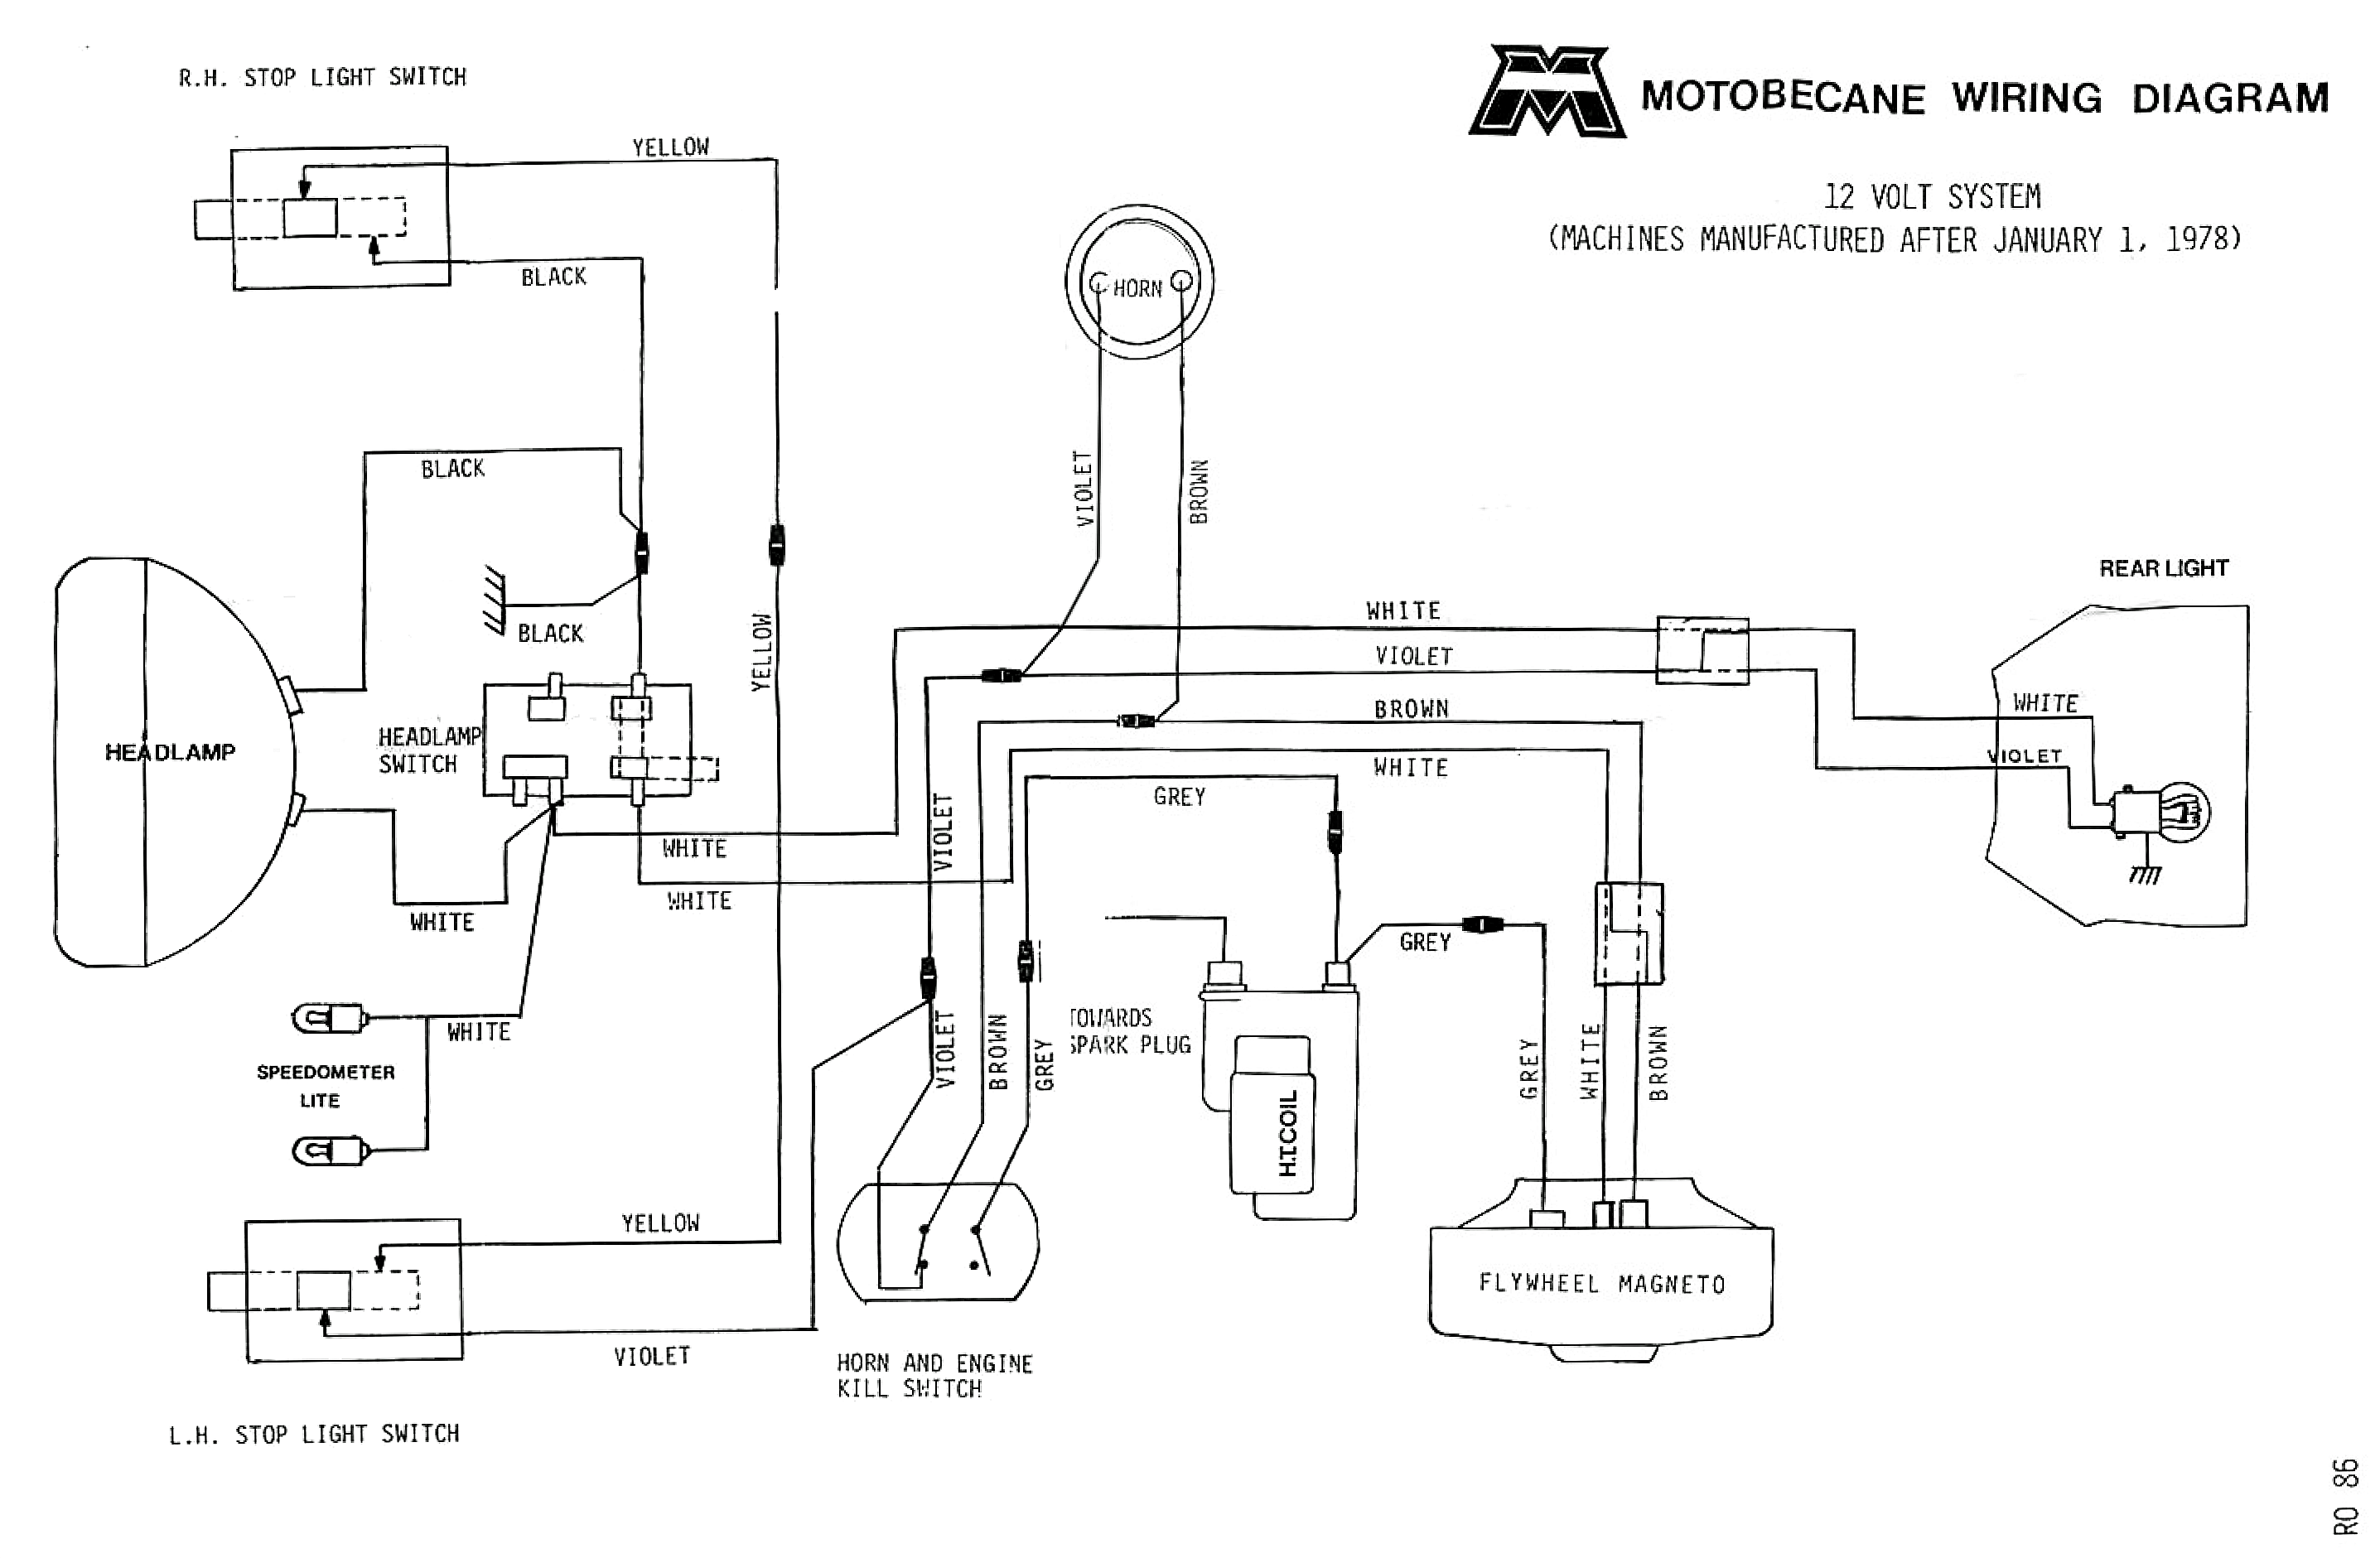 Motobecane12v_wiring_diagram motobecane wiring diagrams moped wiki 12 volt wiring diagram at crackthecode.co